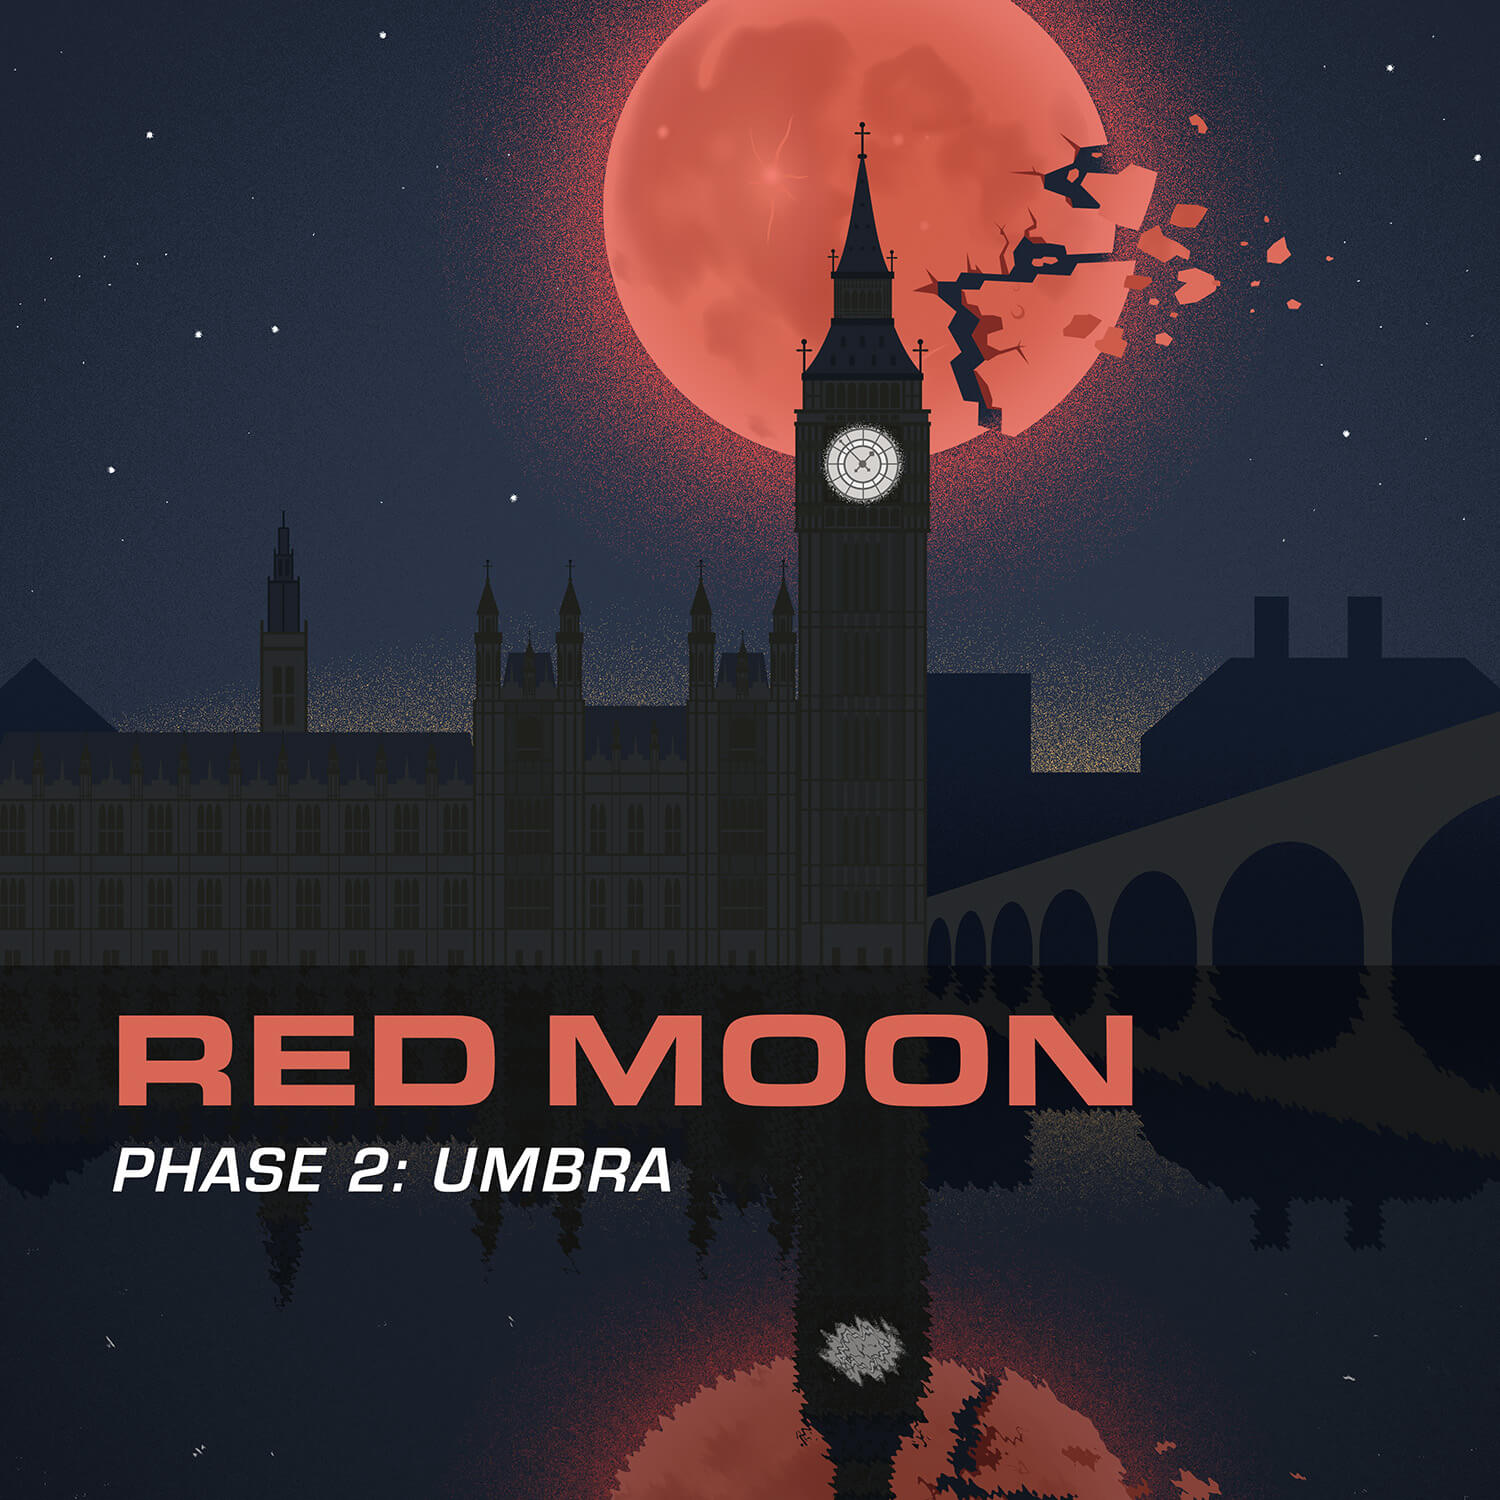 red moon phase for november 2018 - photo #34